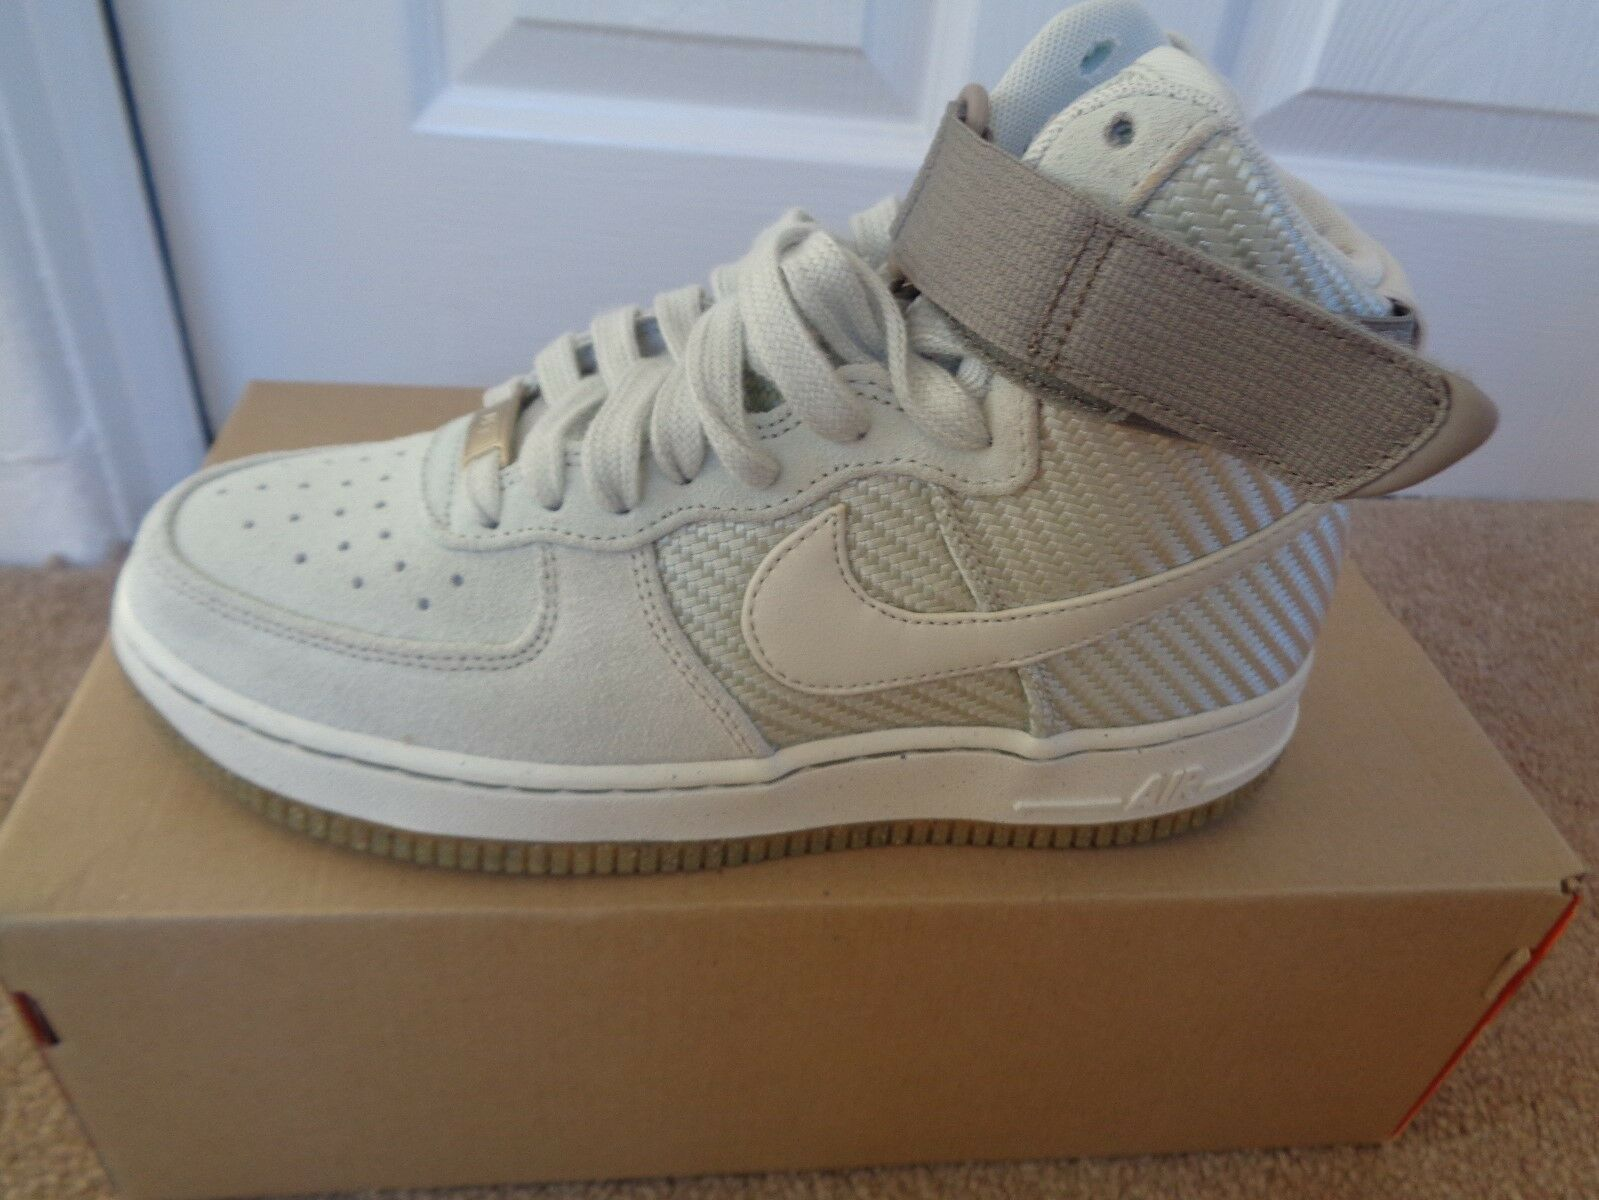 Nike Air Force 1 HI PRM 654440 004 trainers uk 7.5 5 eu 38.5 us 7.5 uk NEW IN BOX 8d8b69